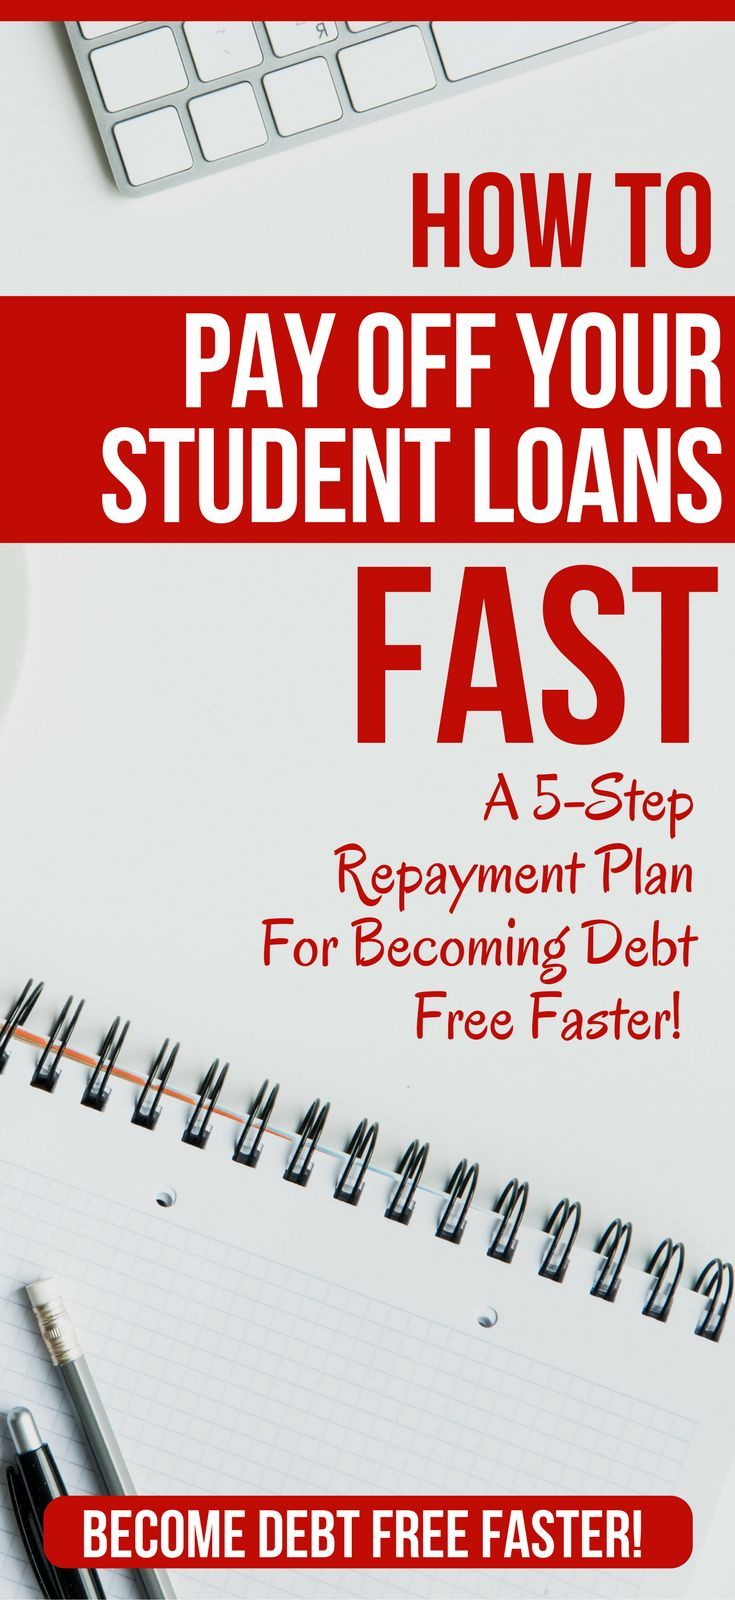 How to Pay Off Student Loans Fast in 2018     5 POWERFUL tips for paying off your student loans faster. Get out of debt faster, with this 5 step plan that works on any income.    student loans paying off | paying off student loans | paying off student loans tips | paying off student loans fast | pay off student loans    #debt #debtfree #studentloans #studentloan  via @https://www.pinterest.com/thewaystowealth/